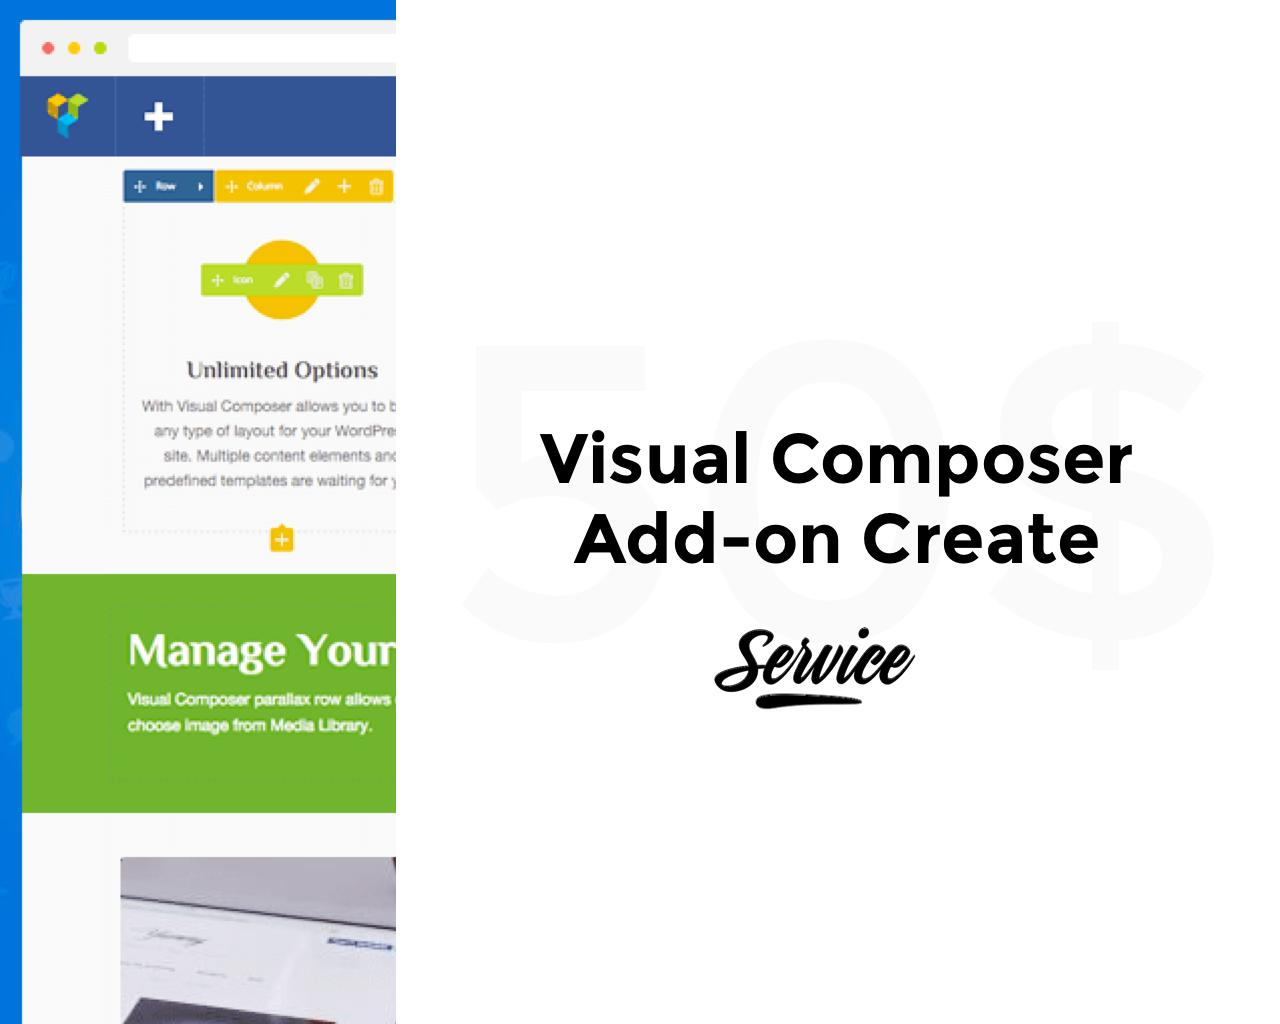 Visual Composer Add-on Creation or Customization by pixelthrone - 103913